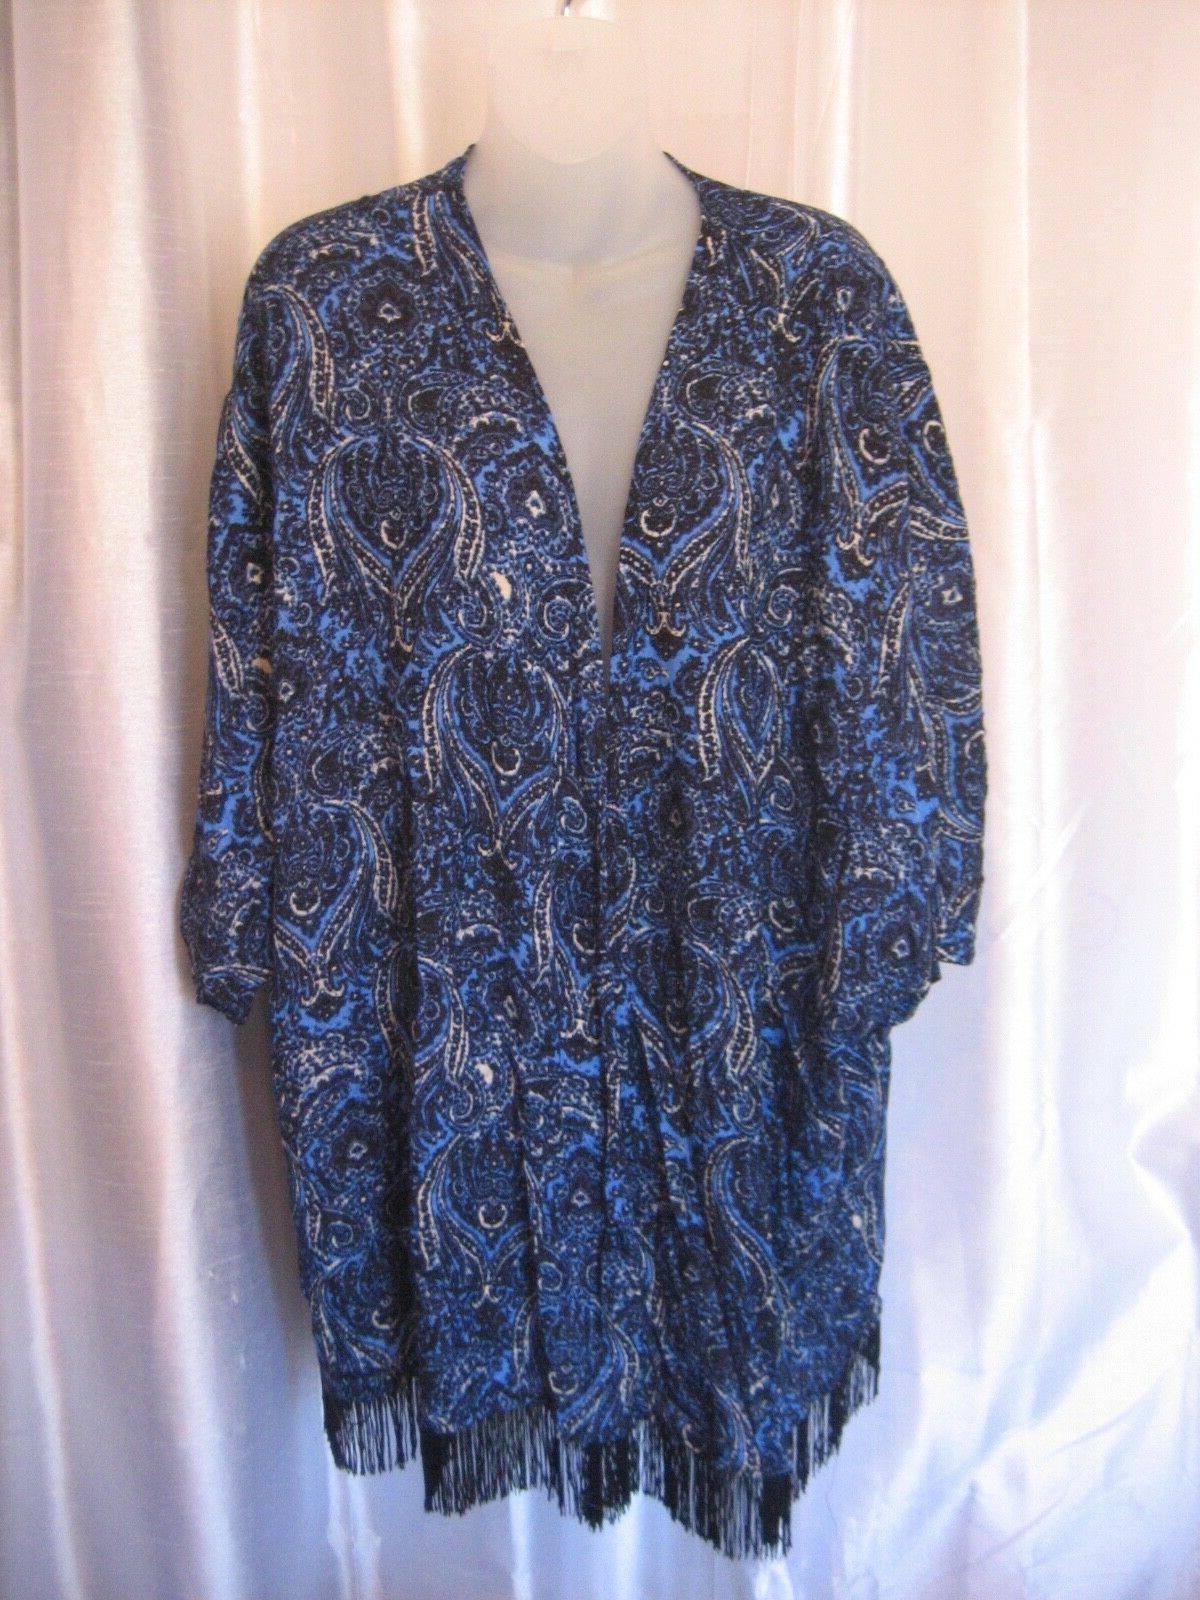 French Laundry Women's Black & Blue Unlined Duster Coat 100%